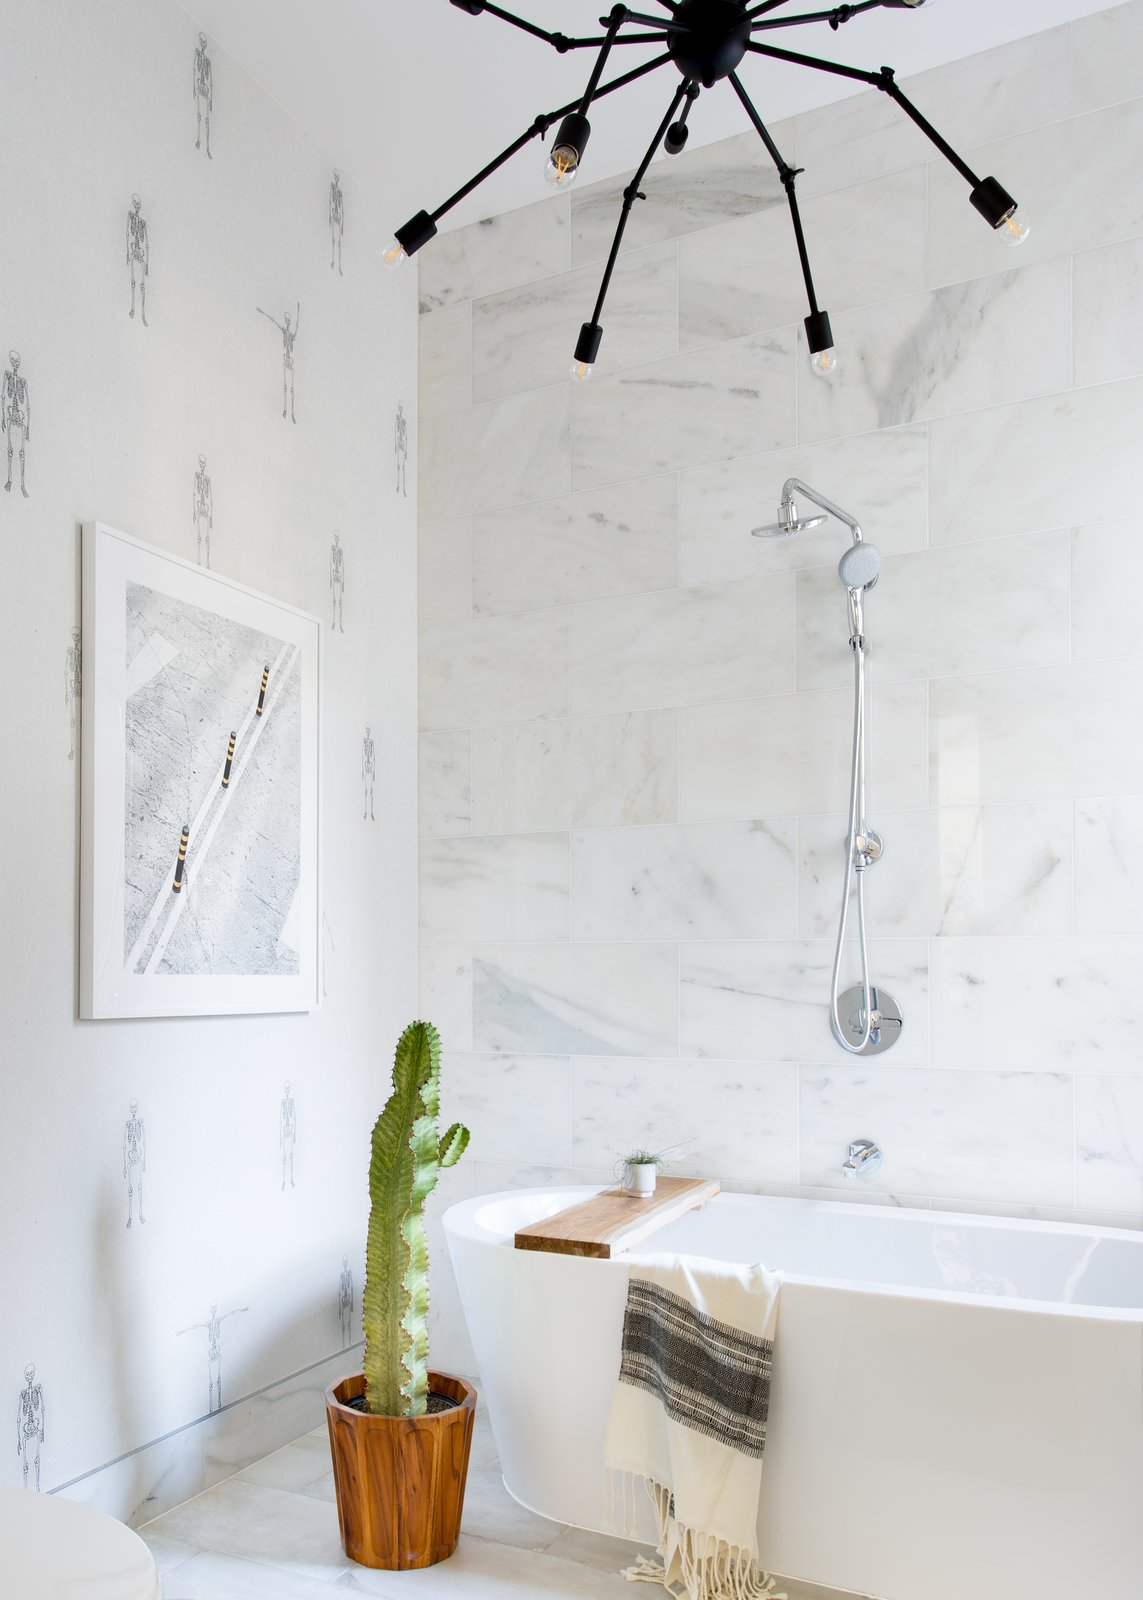 Bath Room, Marble Floor, Freestanding Tub, Pendant Lighting, Marble Wall, Stone Tile Wall, and Accent Lighting Master Bath  Moody Mission Victorian by Regan Baker Design